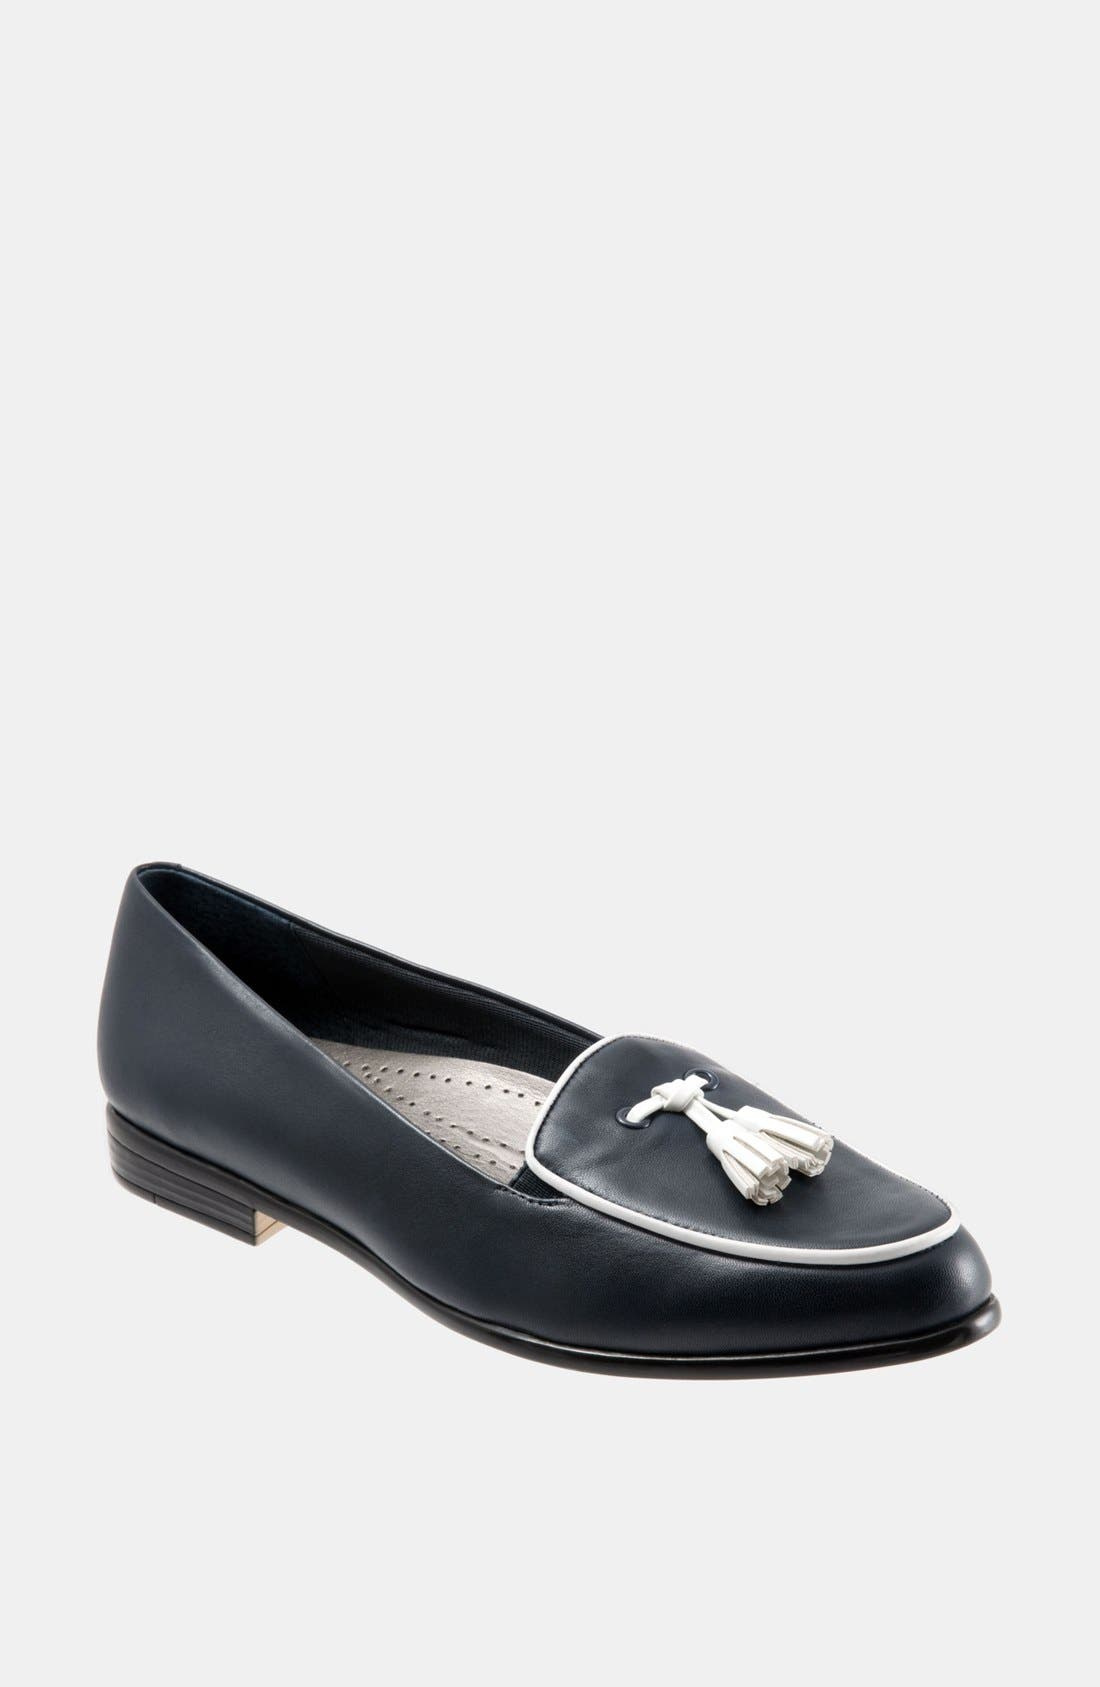 Alternate Image 1 Selected - Trotters 'Leana' Flat